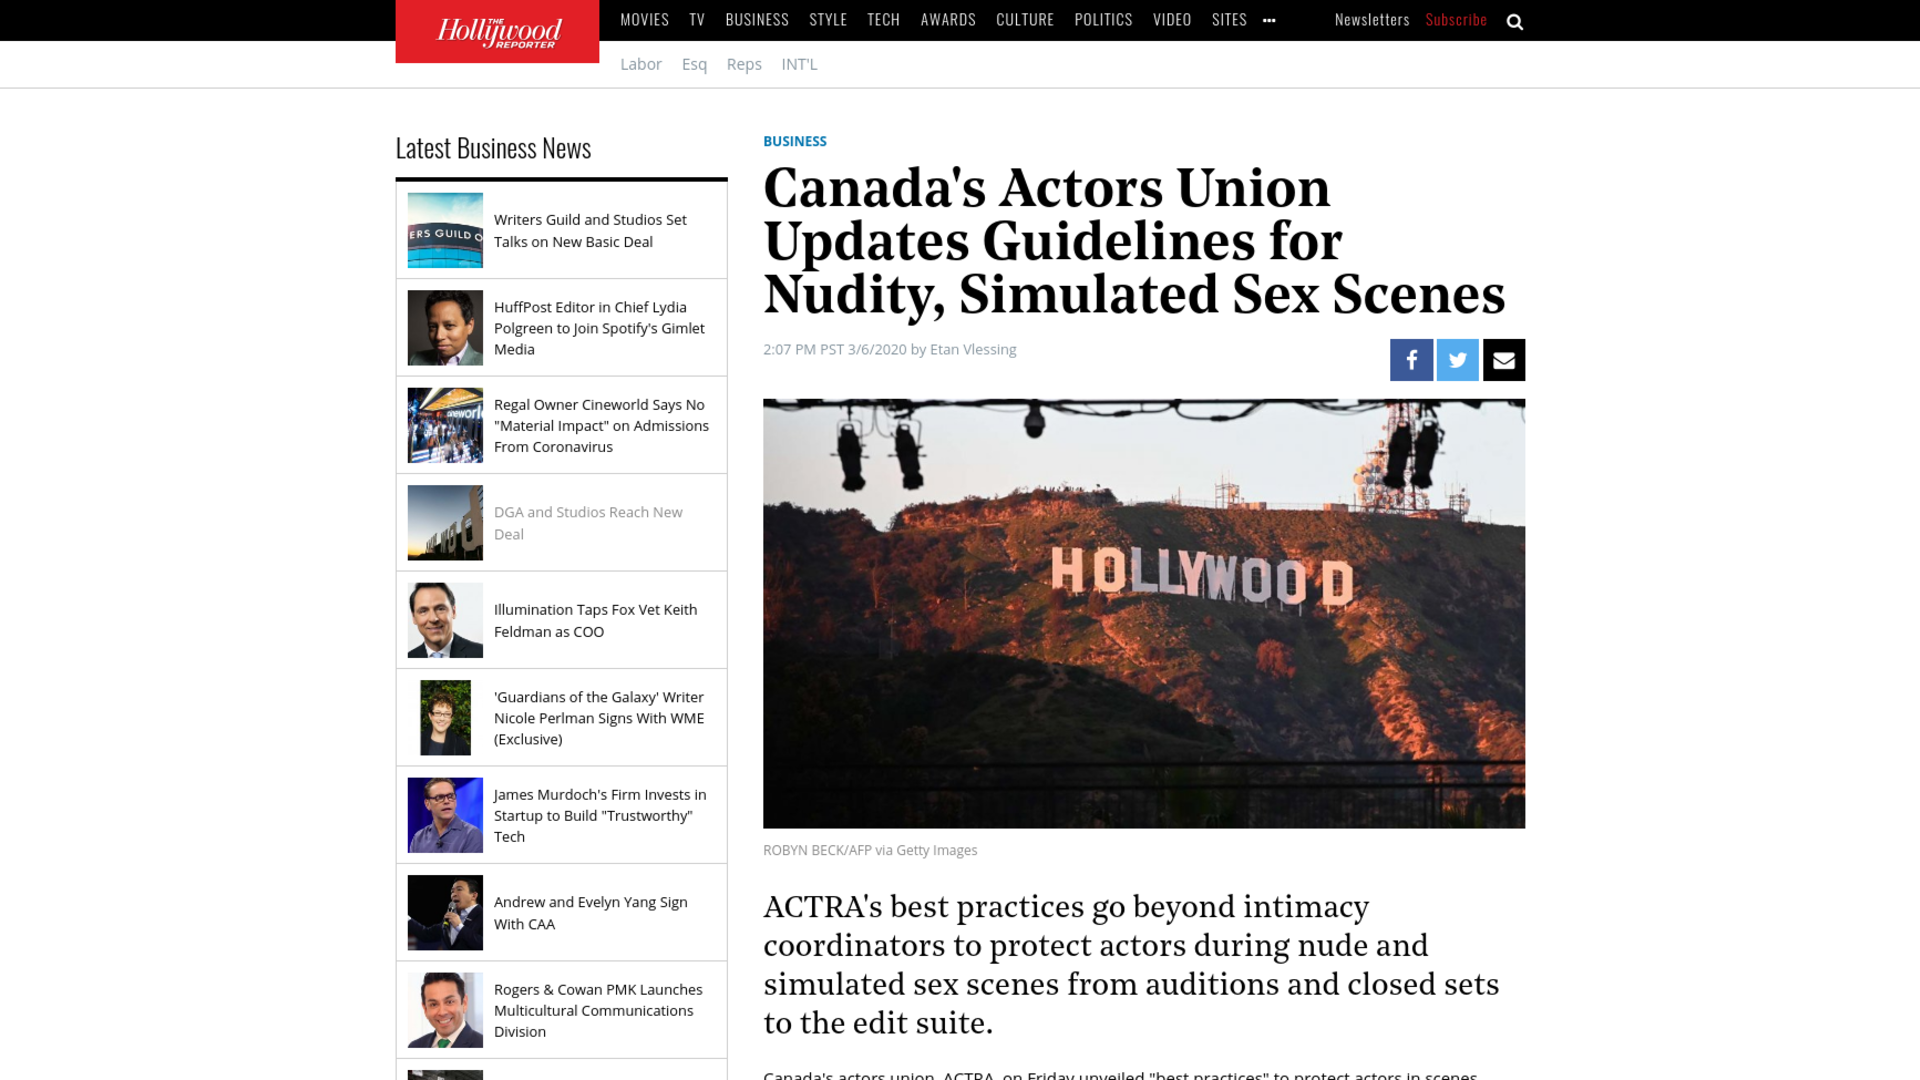 Fairness Rocks News Canada's Actors Union Updates Guidelines for Nudity, Simulated Sex Scenes